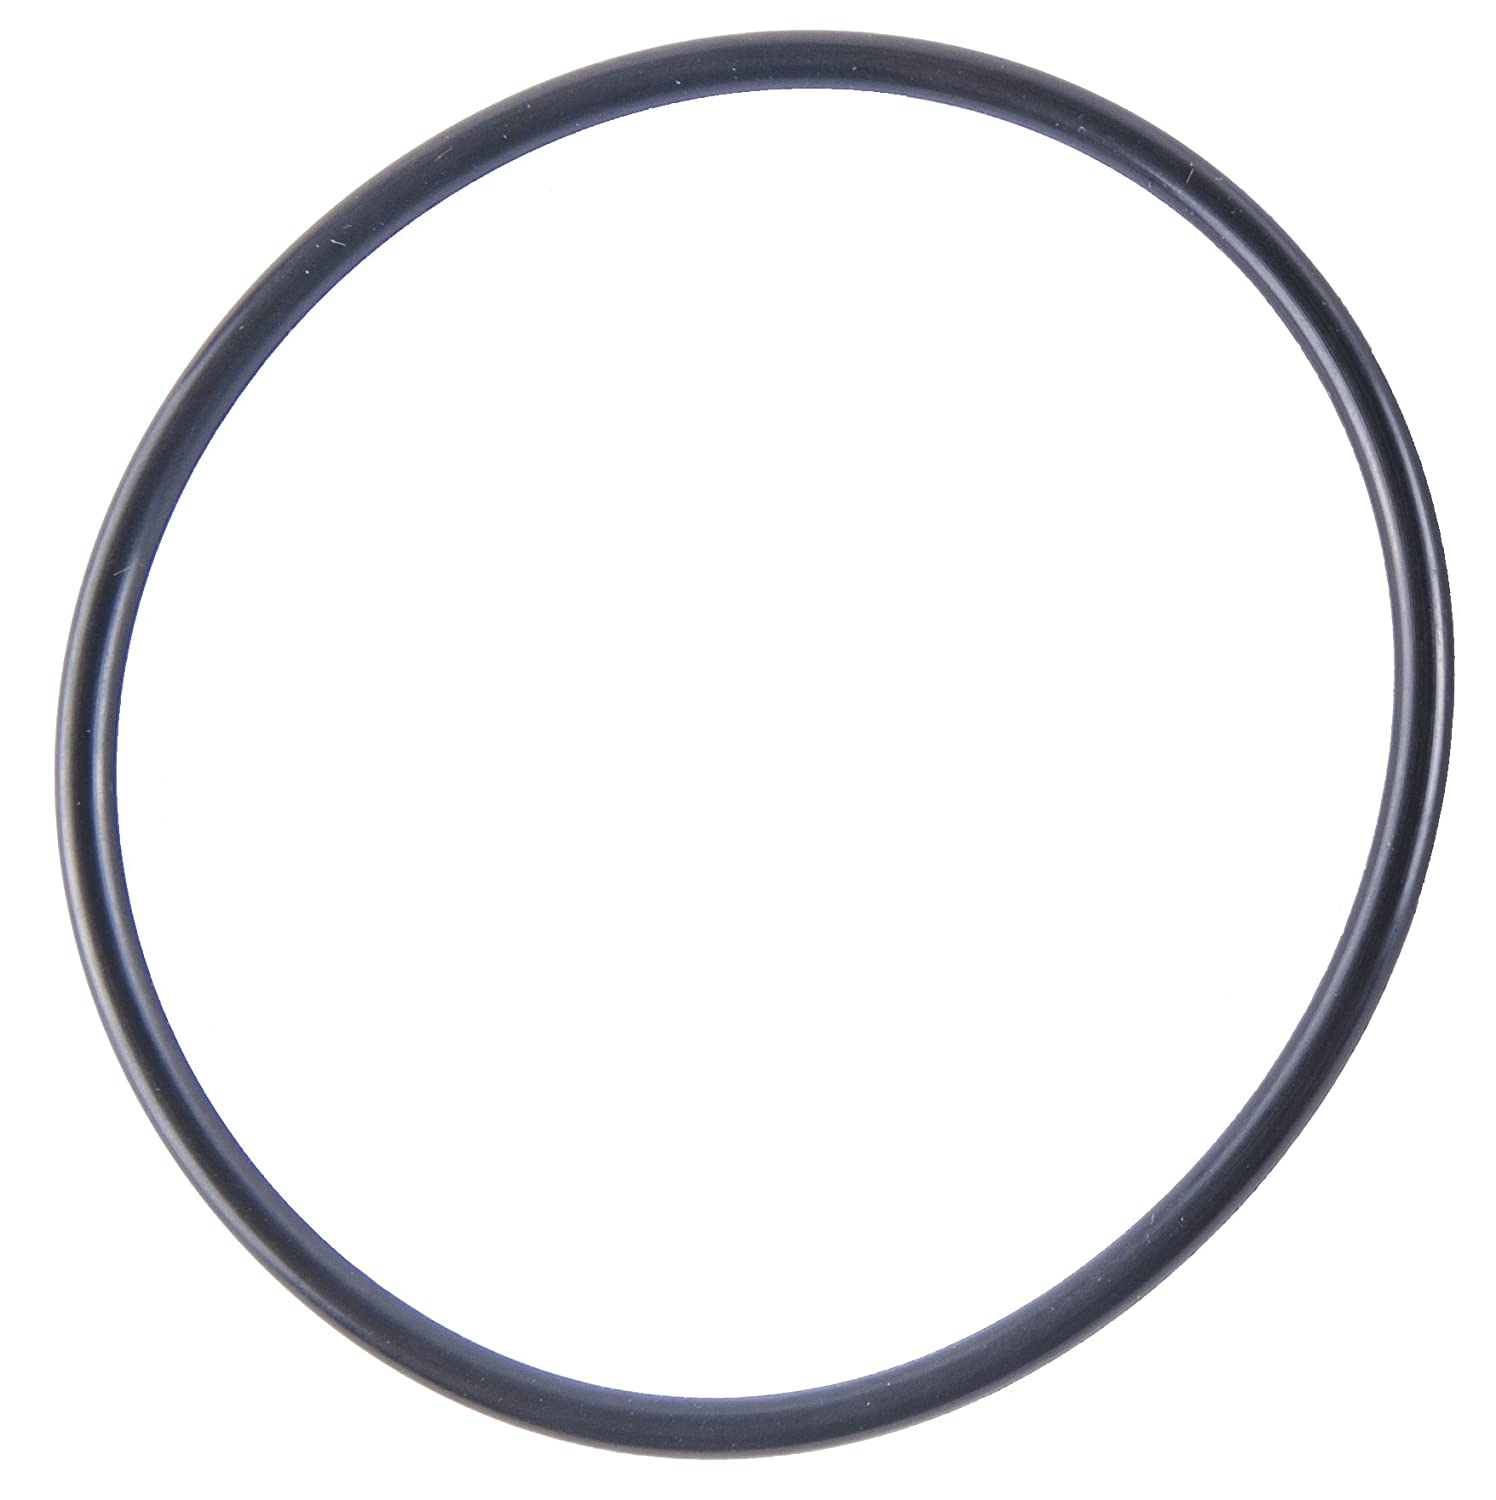 East Lake Axle rear differential seal kit compatible with Yamaha 350 Bruin//Grizzly//Wolverine 2006-2014